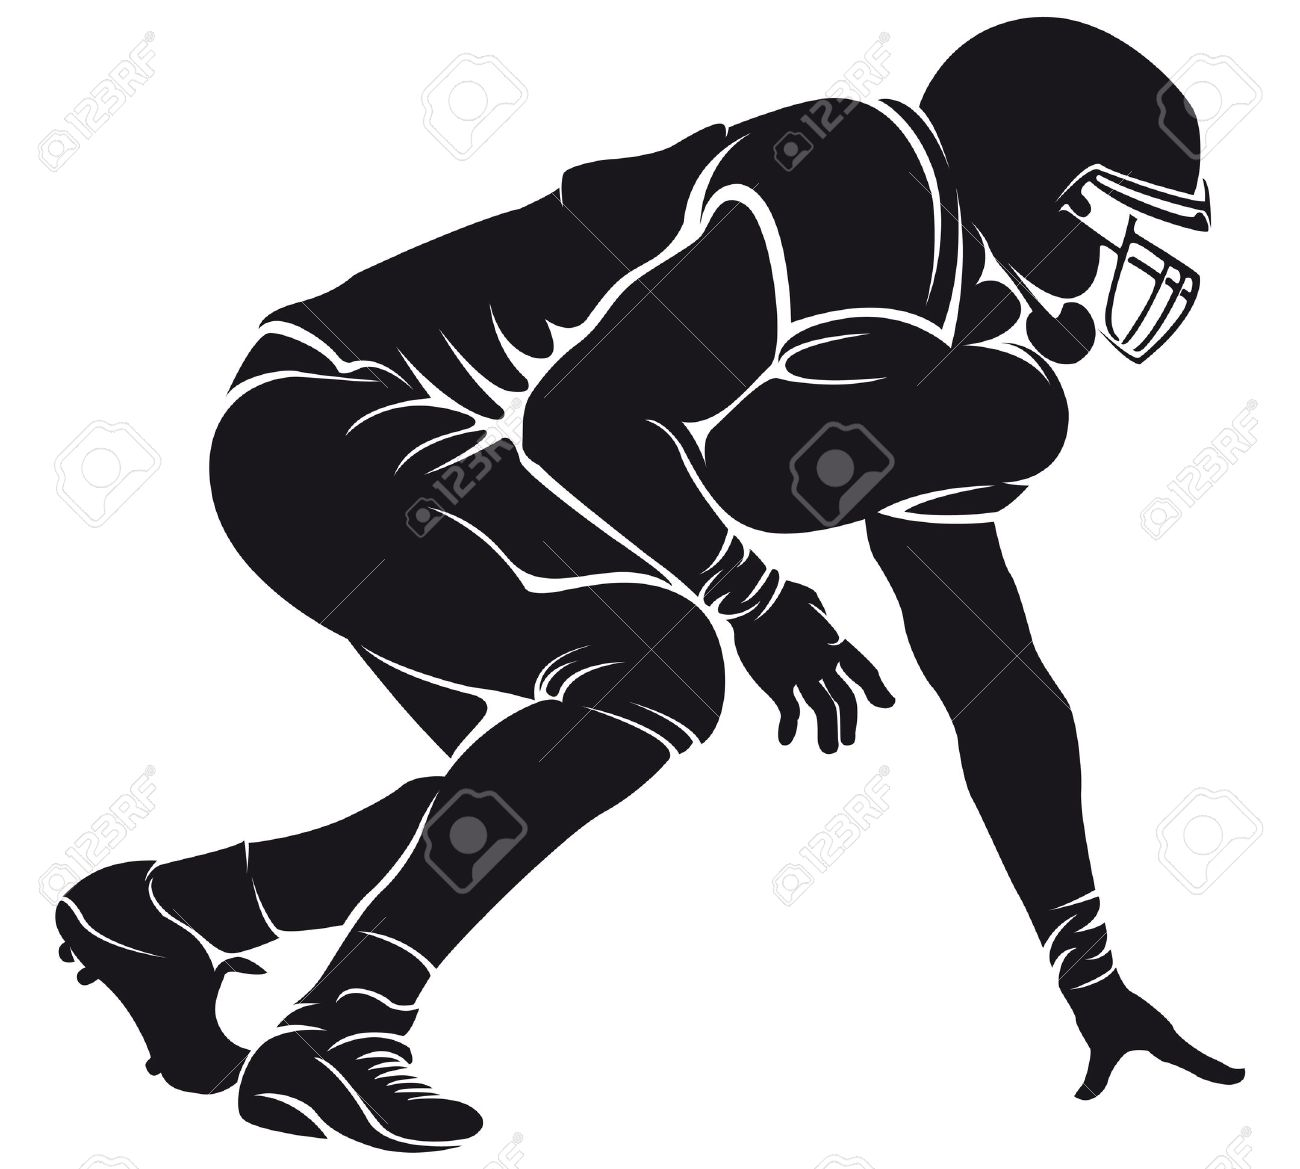 American Football Player Silhouette Royalty Free Cliparts